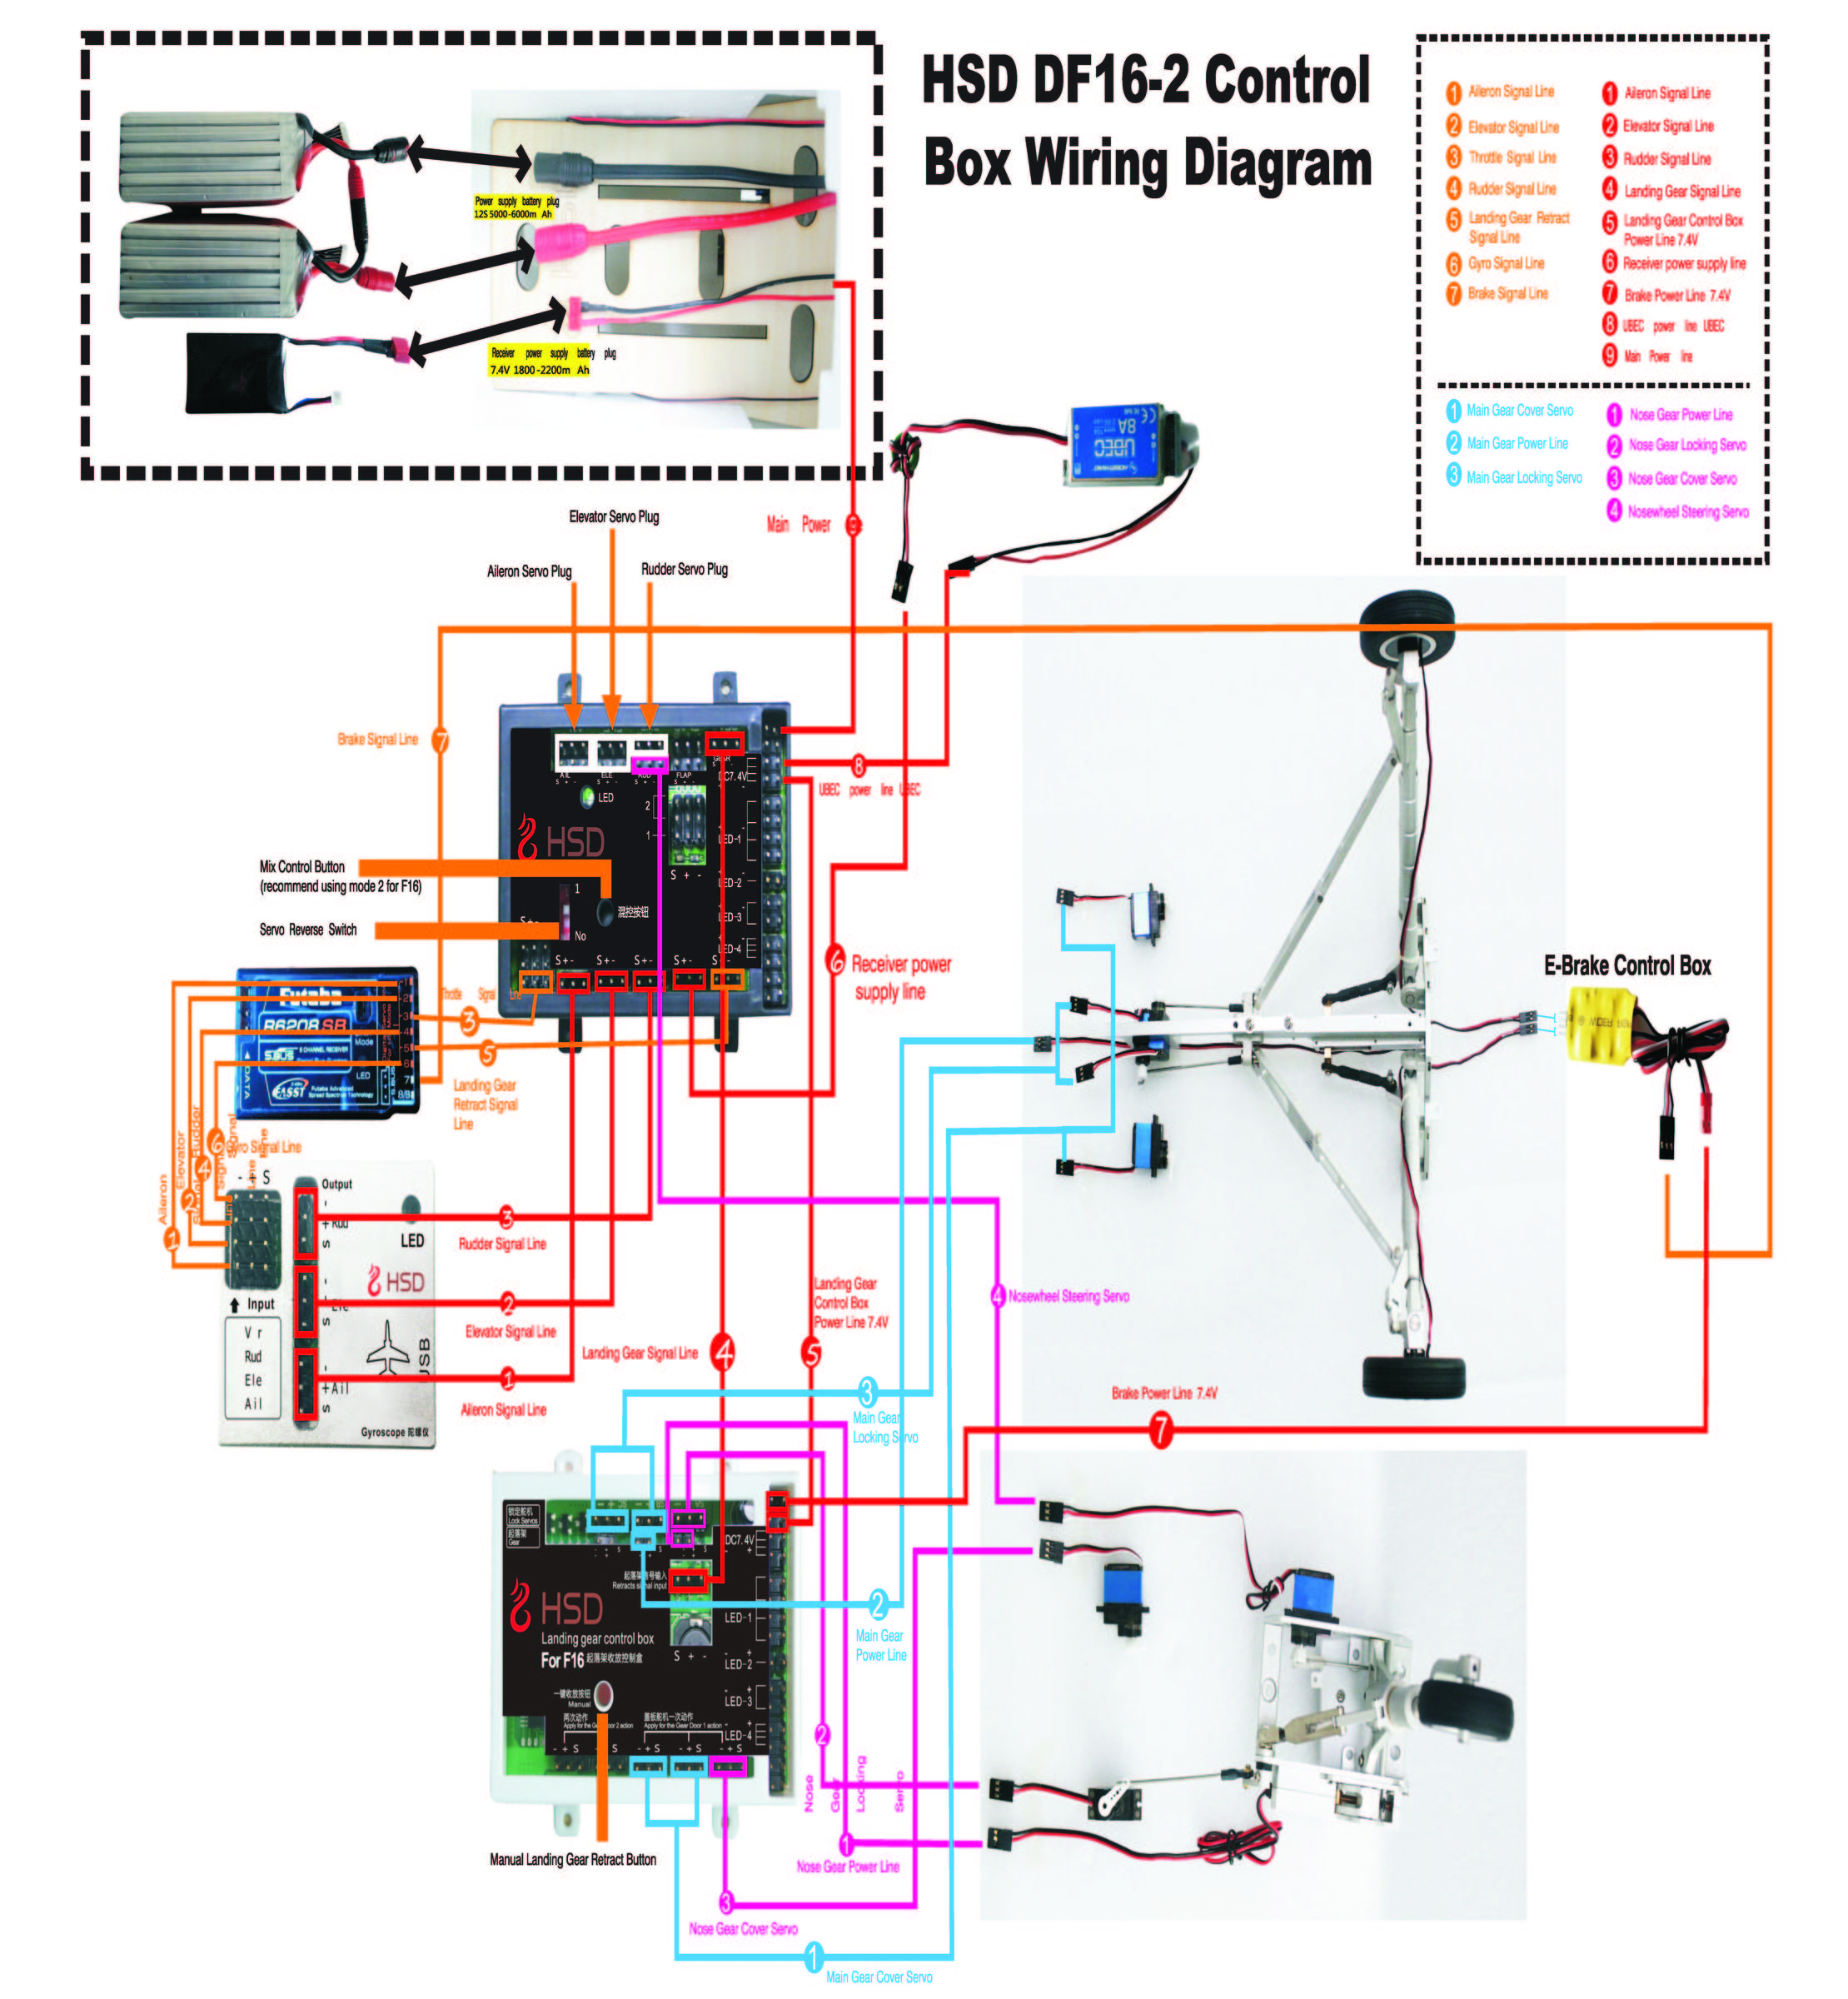 X8 Wiring Diagram Libraries Schematic For The Plugs Of Four Major Servo Manufacturers Motor Libraryx8 Html Uml